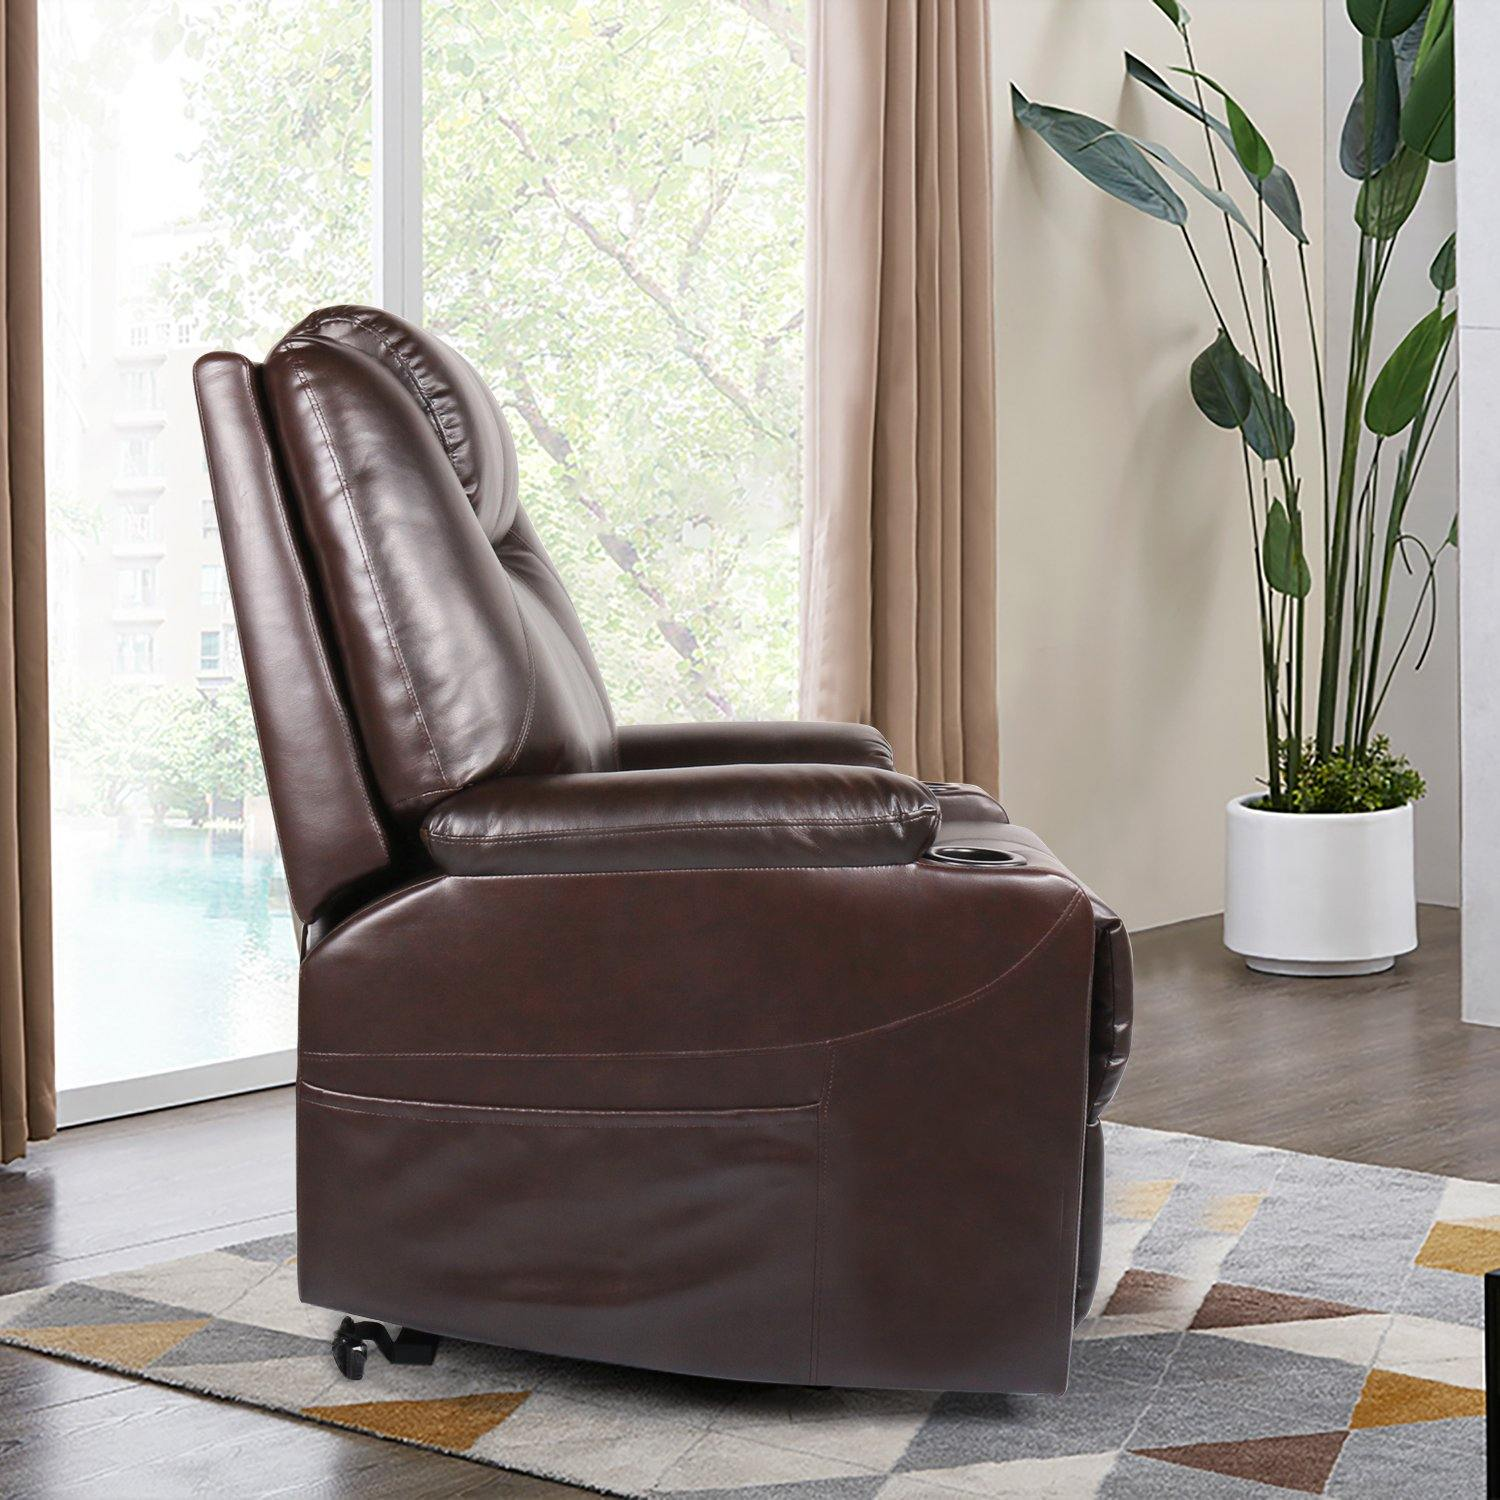 Milemont Recliner Chair, PU Leather, Ergonomic Lounge Chair with Cup Holders and Side Pockets, USB Ports, Brown